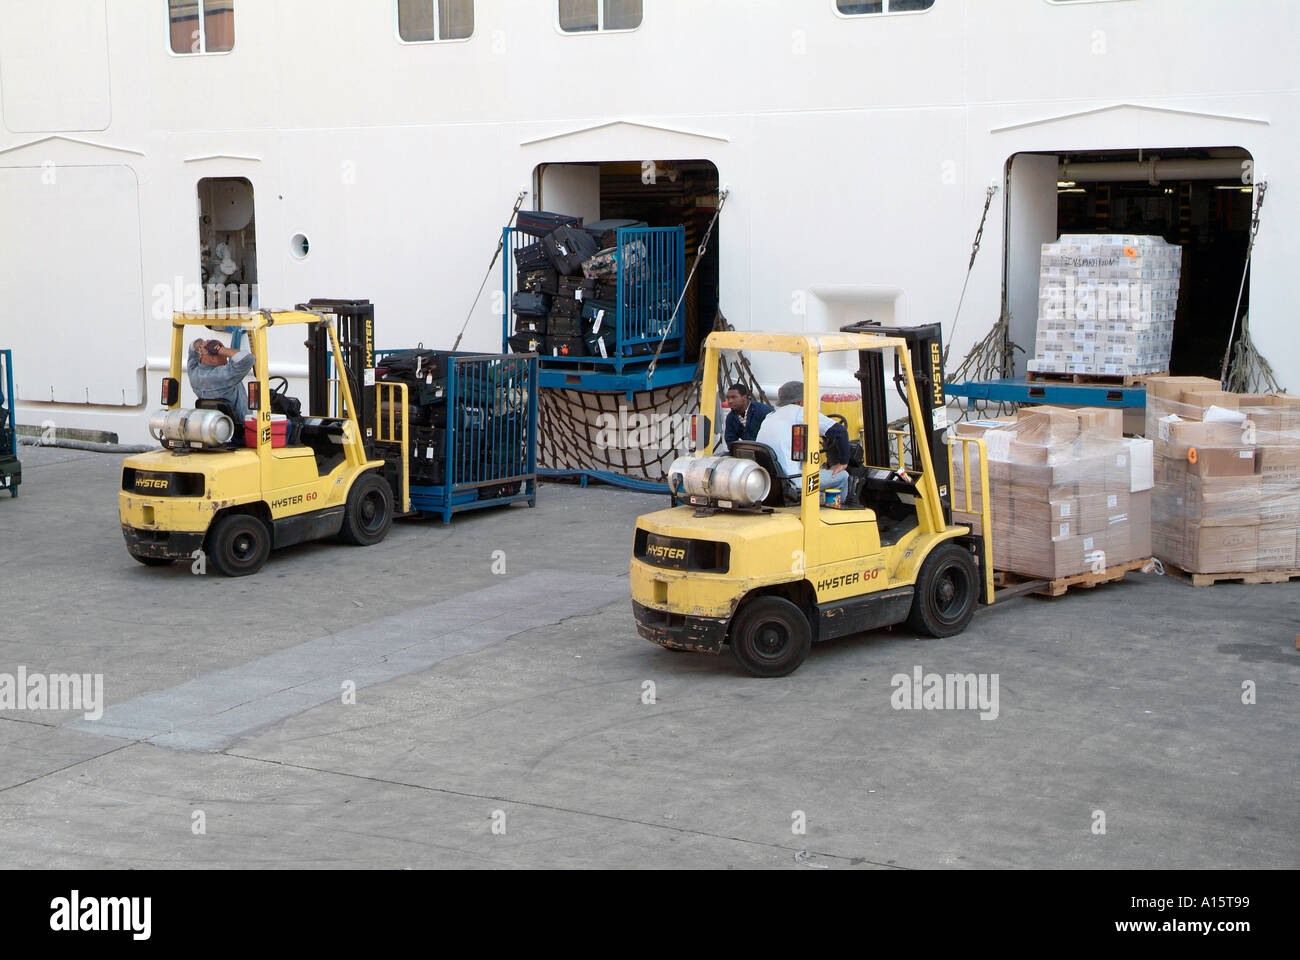 Workers Load Cruise Ship With Supplies With A Fork Lift Truck In - Cruise ship supplies